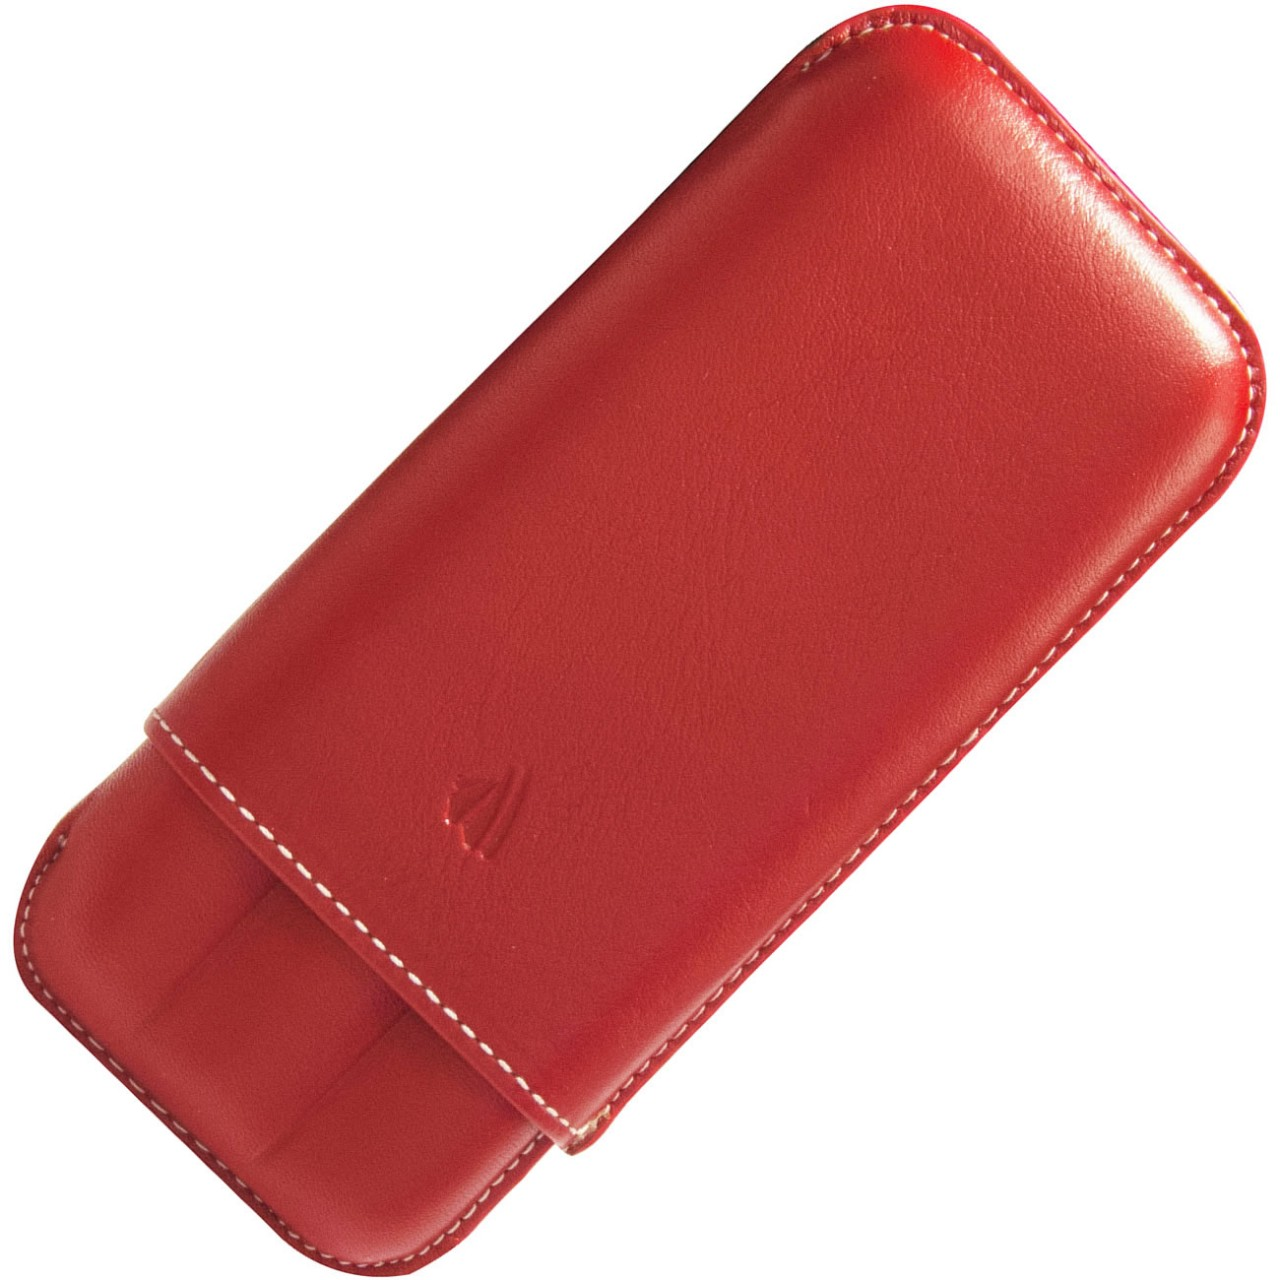 COLLECTOR 3-PEN CASE * RIVIERA RED